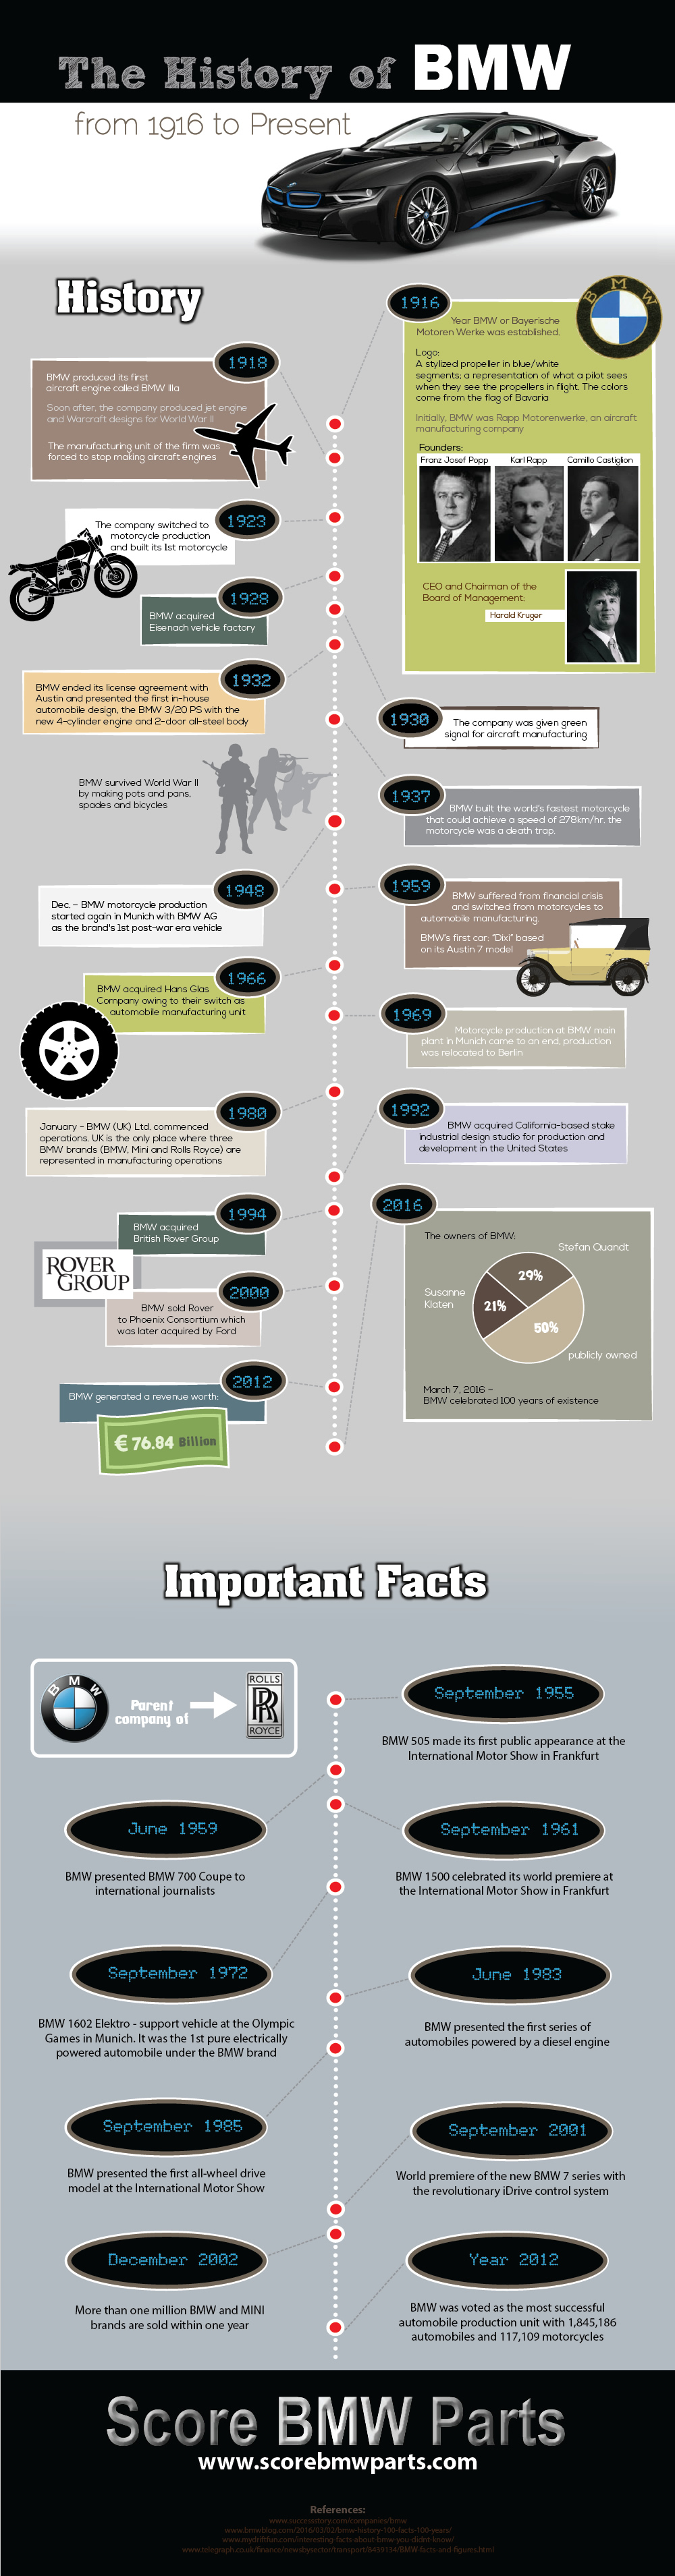 Things You Did Not Know About BMV - Infographic